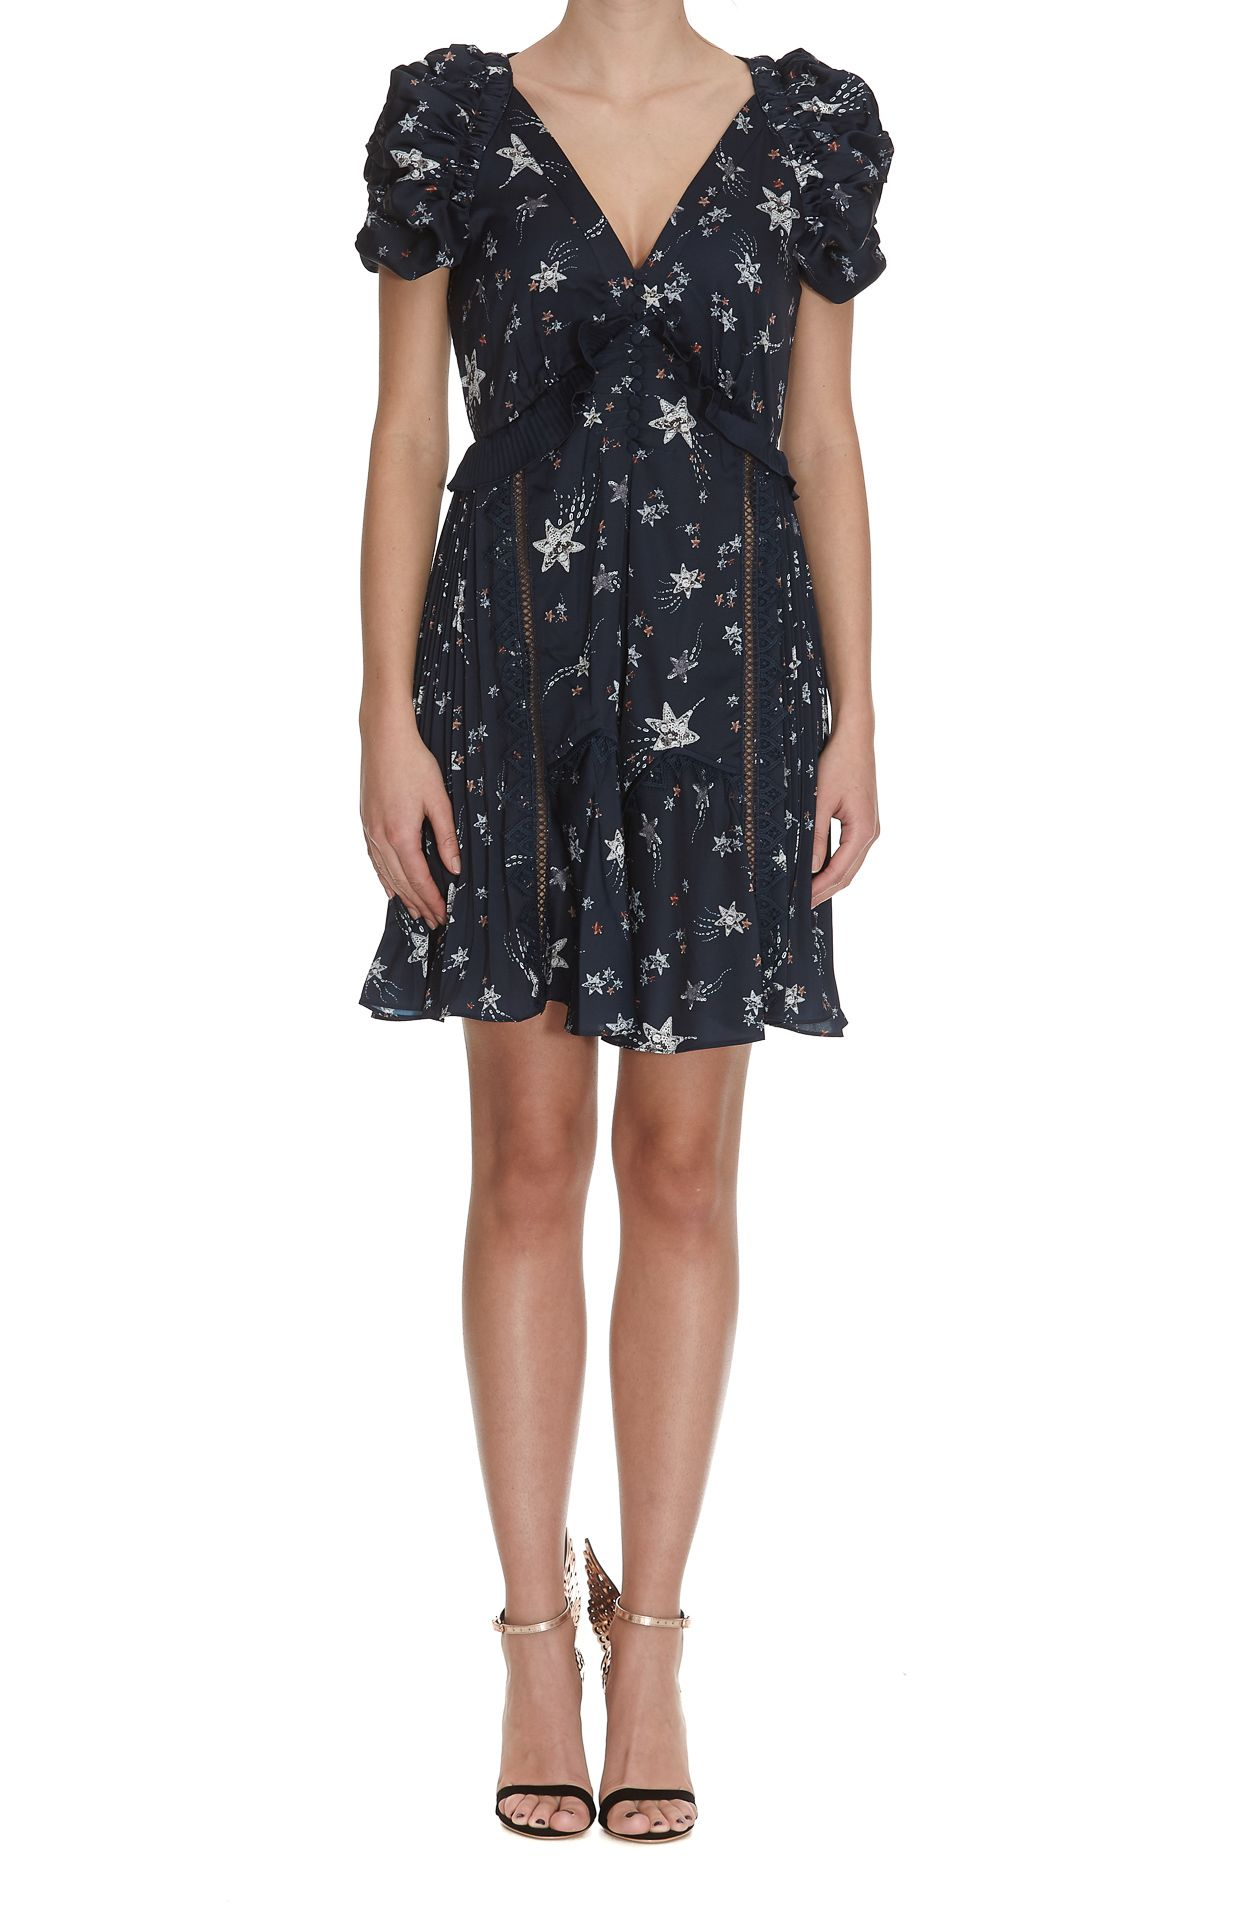 Self-portrait Star Satin Printed Mini Dress